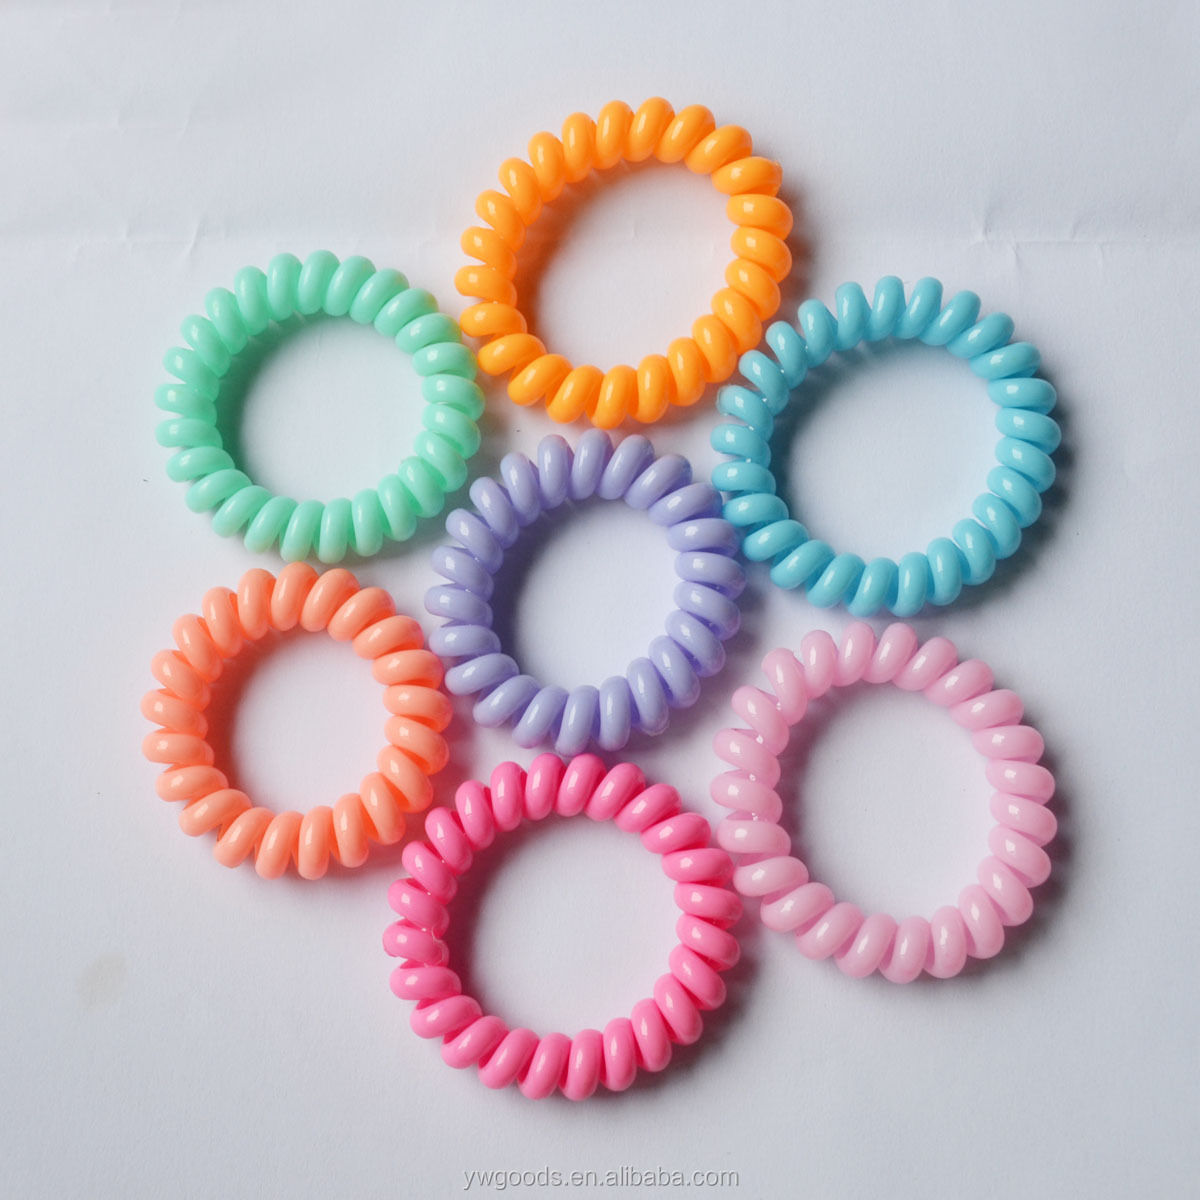 Fashion Elastic Hair Bands Tri Color Telephone Line Shaped Ties Plastic Spiral